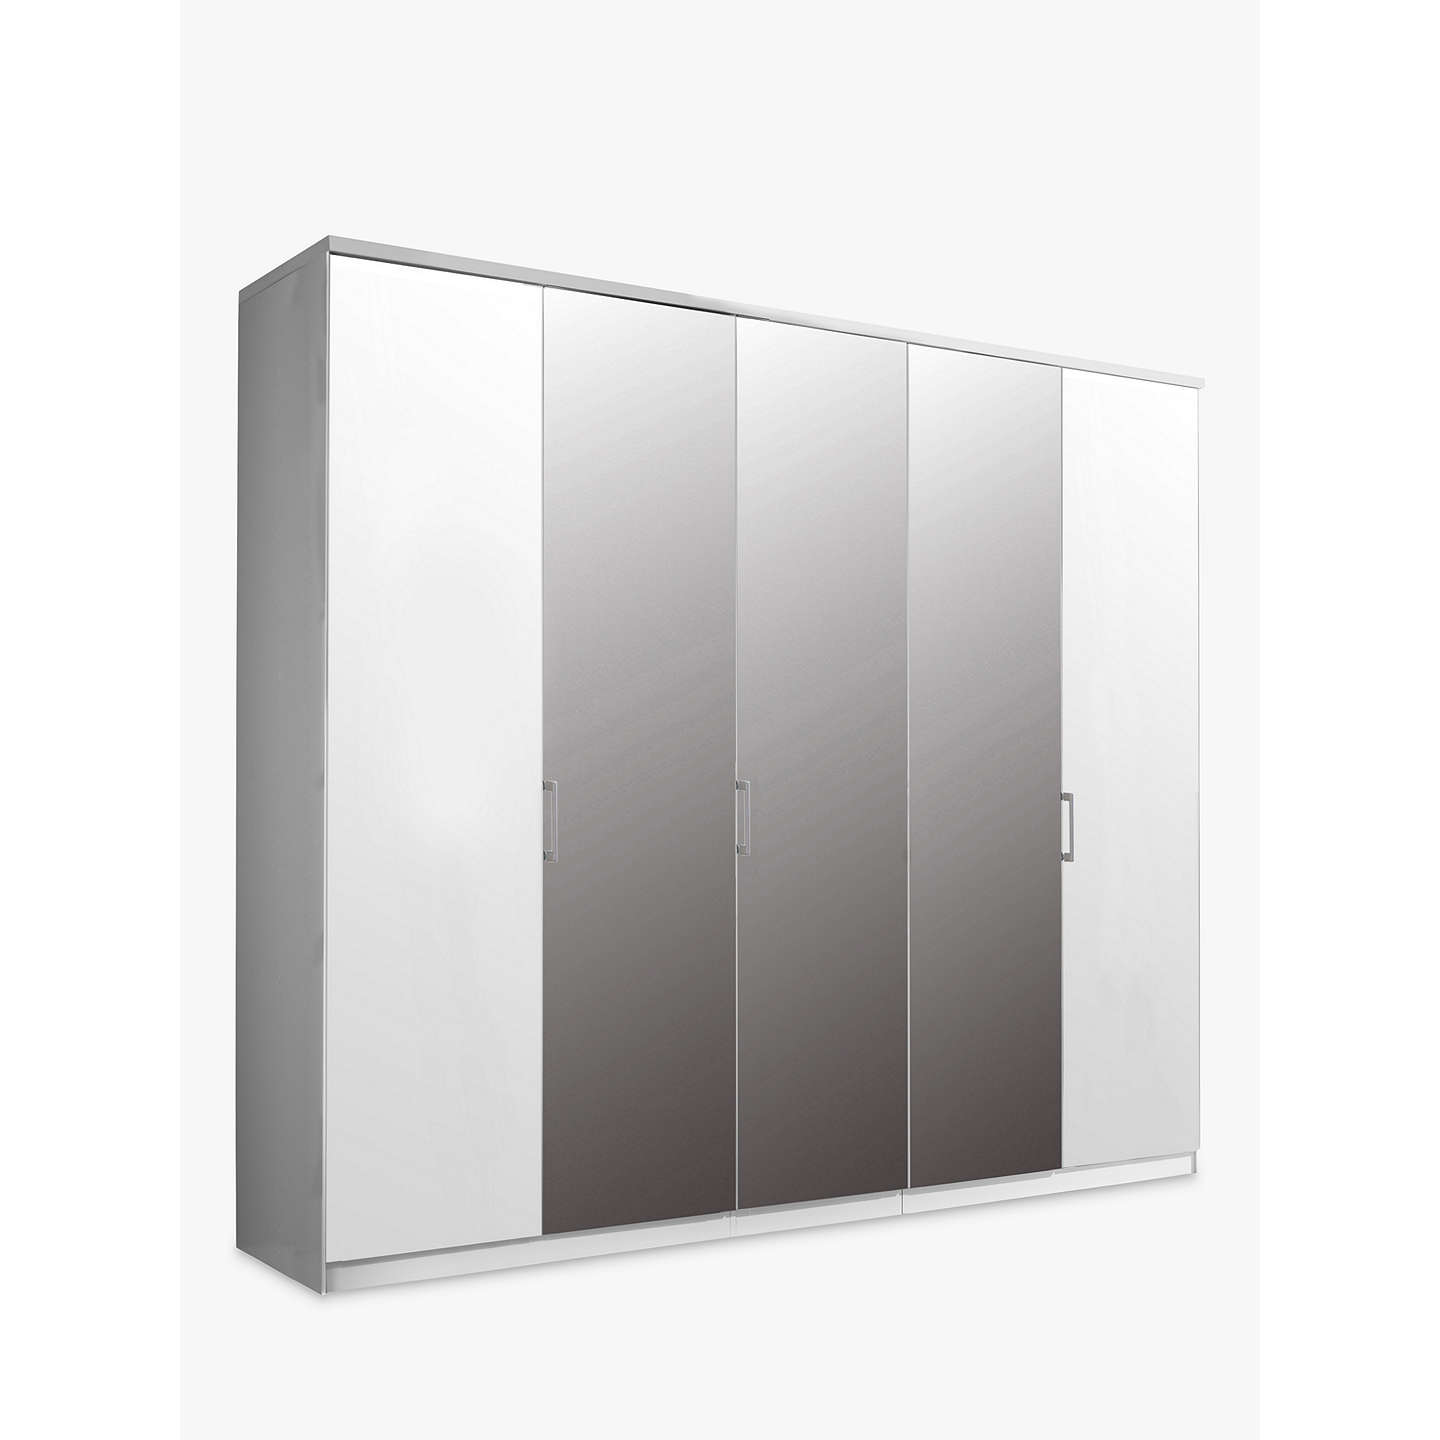 Buyjohn Lewis Special Elstra 250Cm Mirrored Hinged Door Wardrobe, Mirroralpine